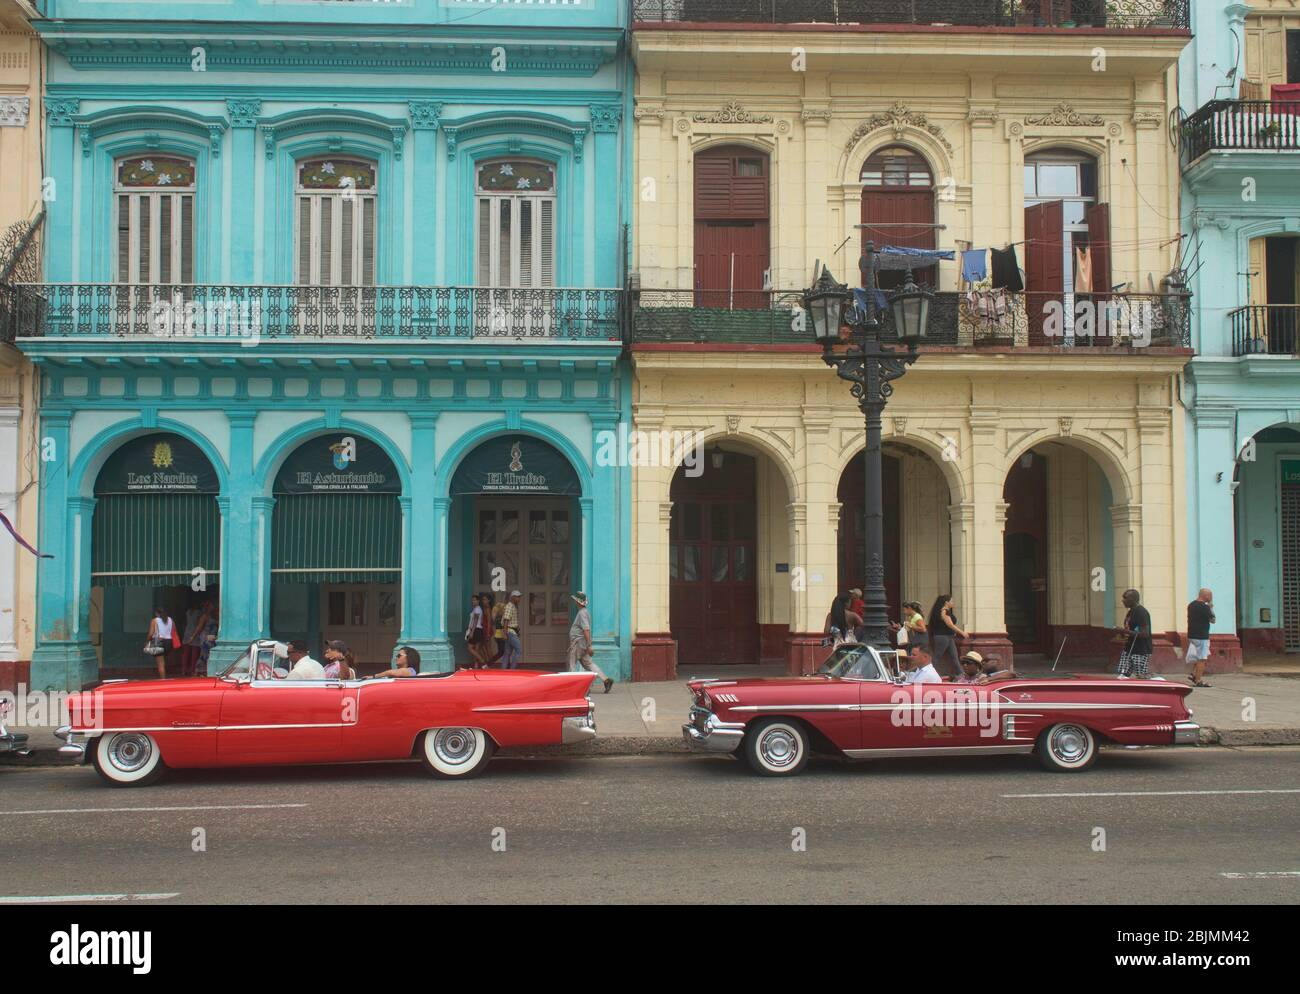 Vintage automobiles and crumbling colonial architecture, Havana, Cuba. Stock Photo